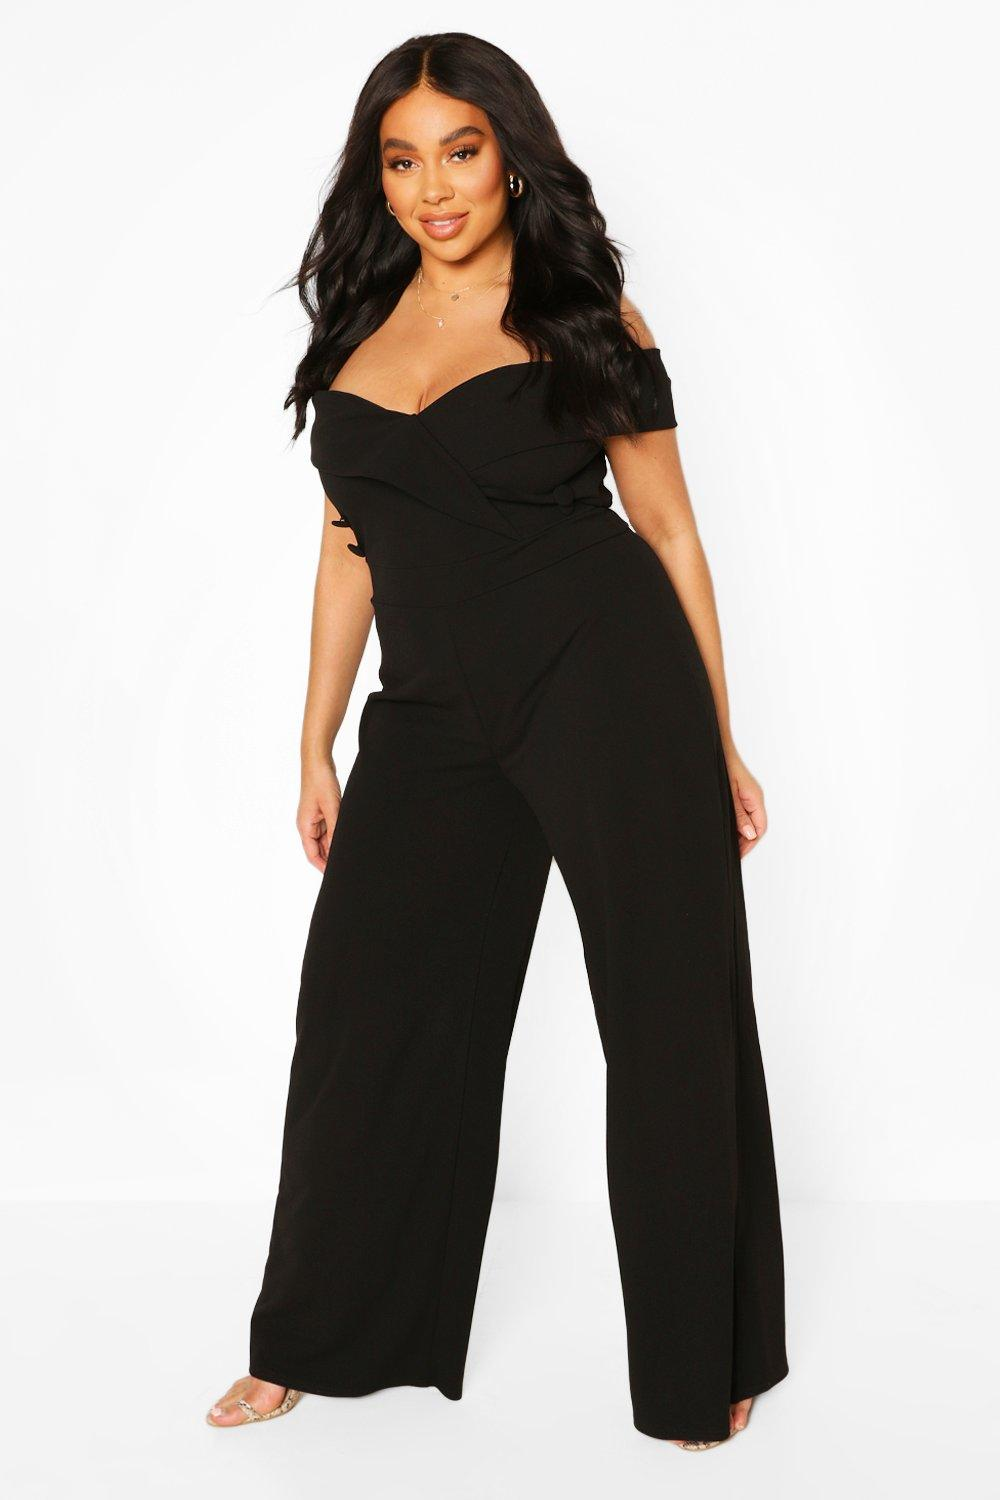 boohoo Womens Plus Bardot Button Detail Jumpsuit - Black - 20, Black